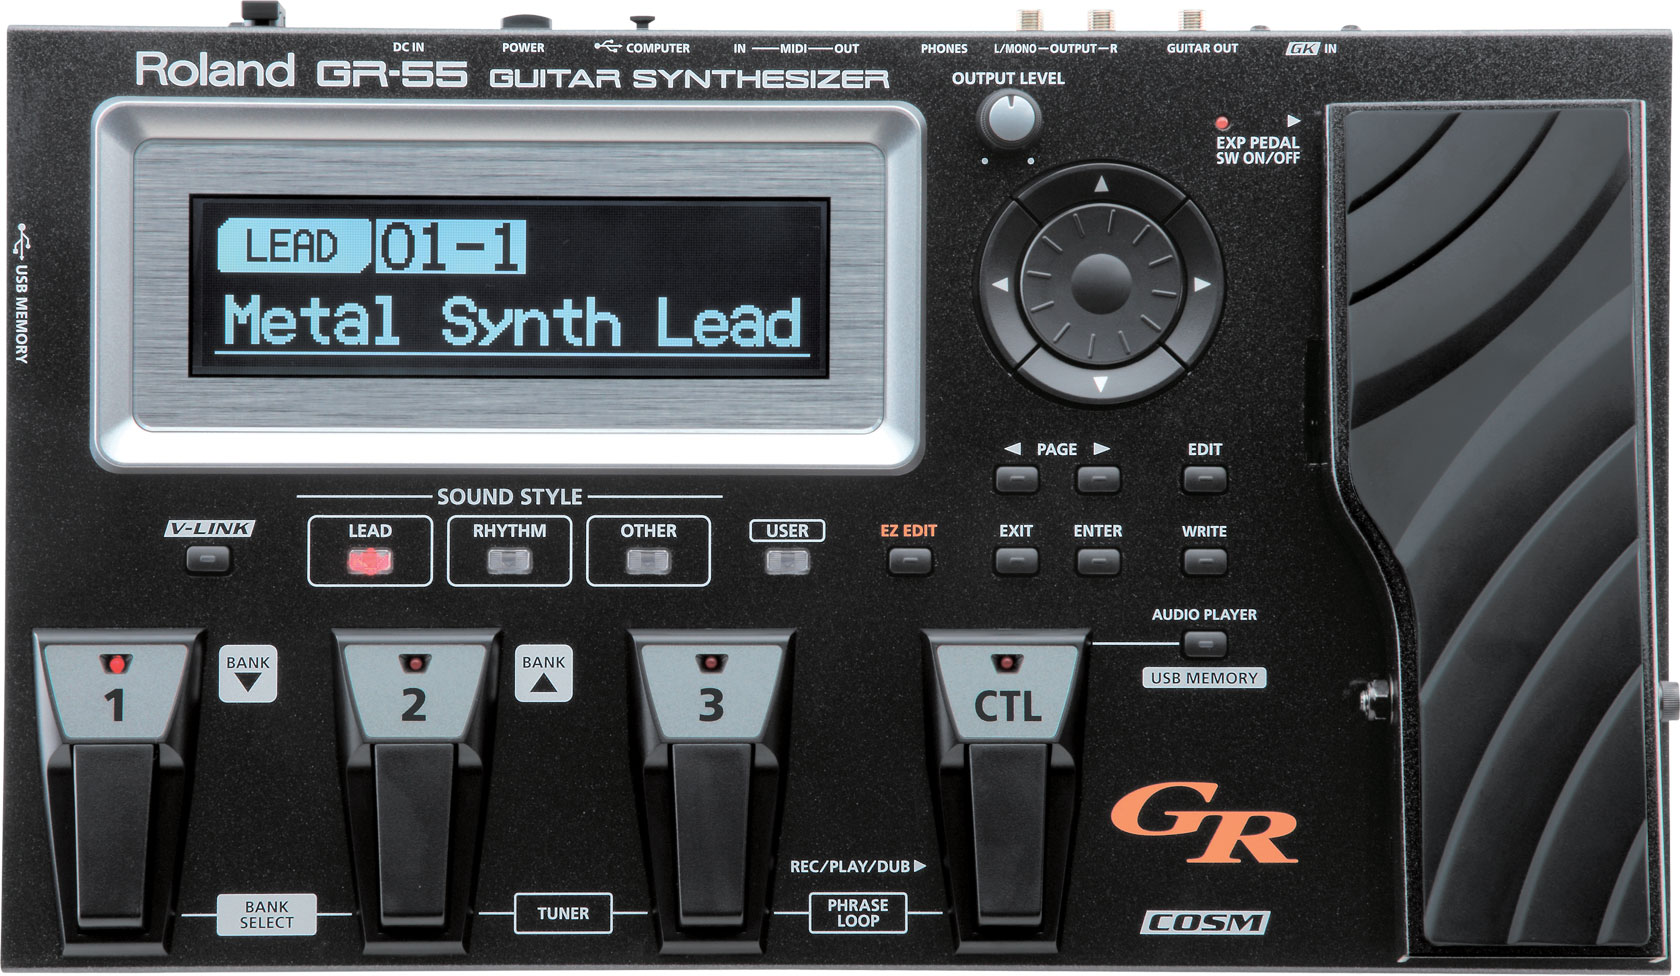 Guitar Synth Pedal >> Gr 55 Guitar Synthesizer Roland